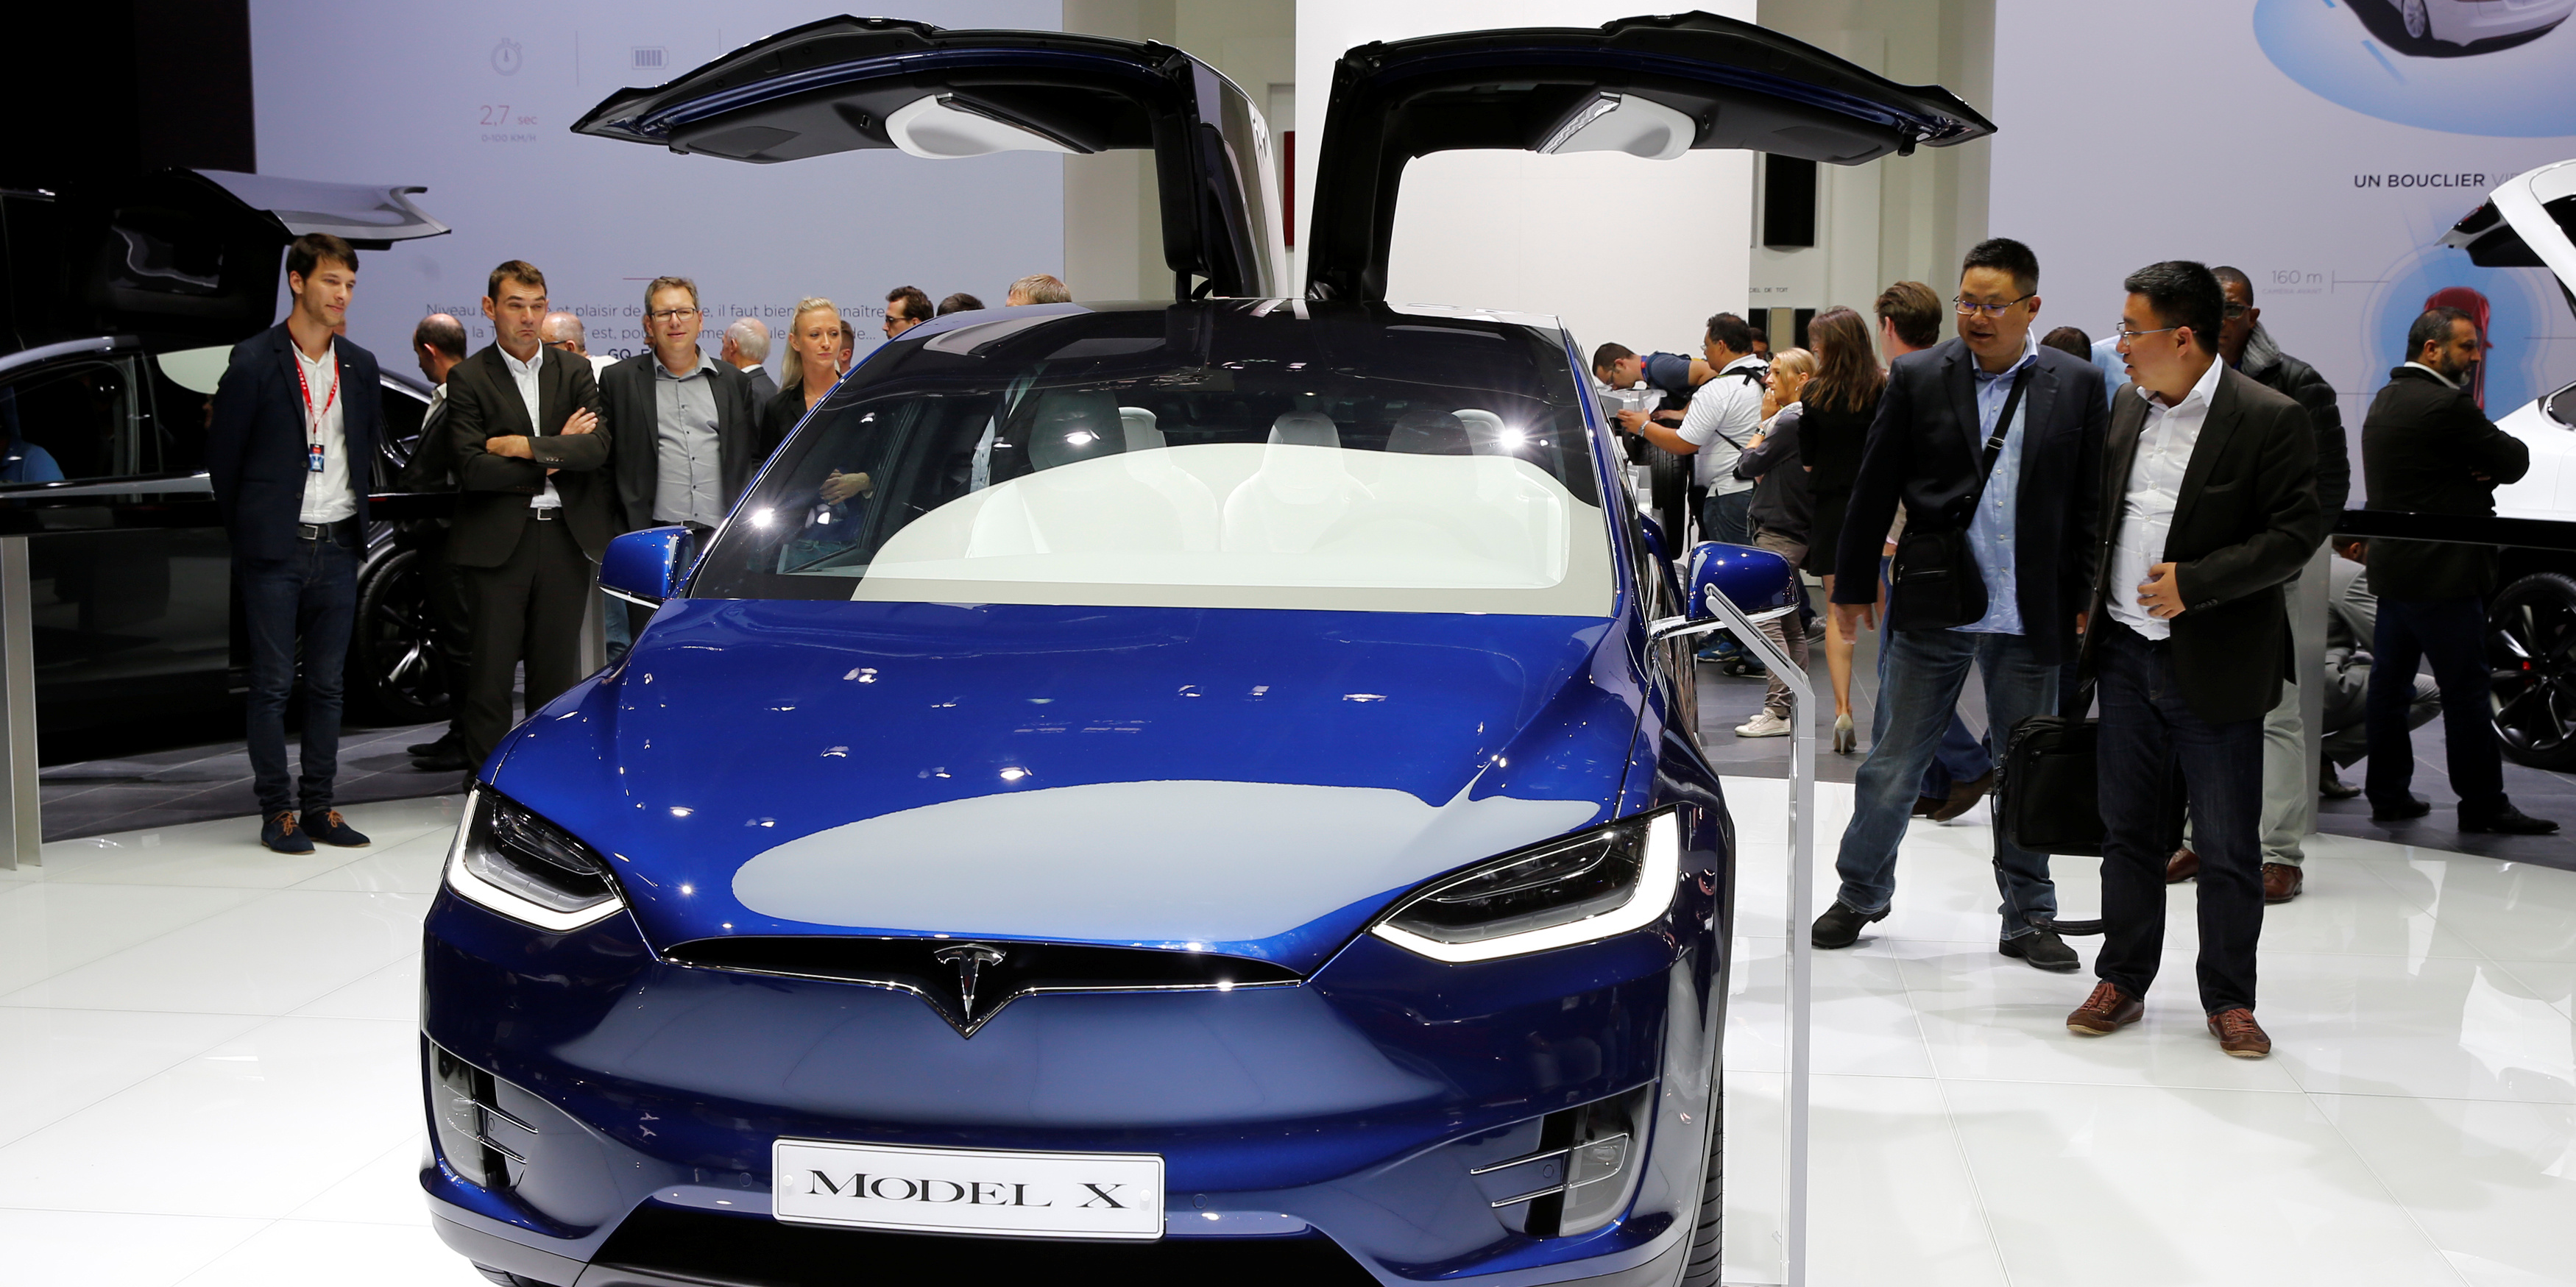 Tesla S Musk Vows To Release Major Upgrades Despite Customer Complaints